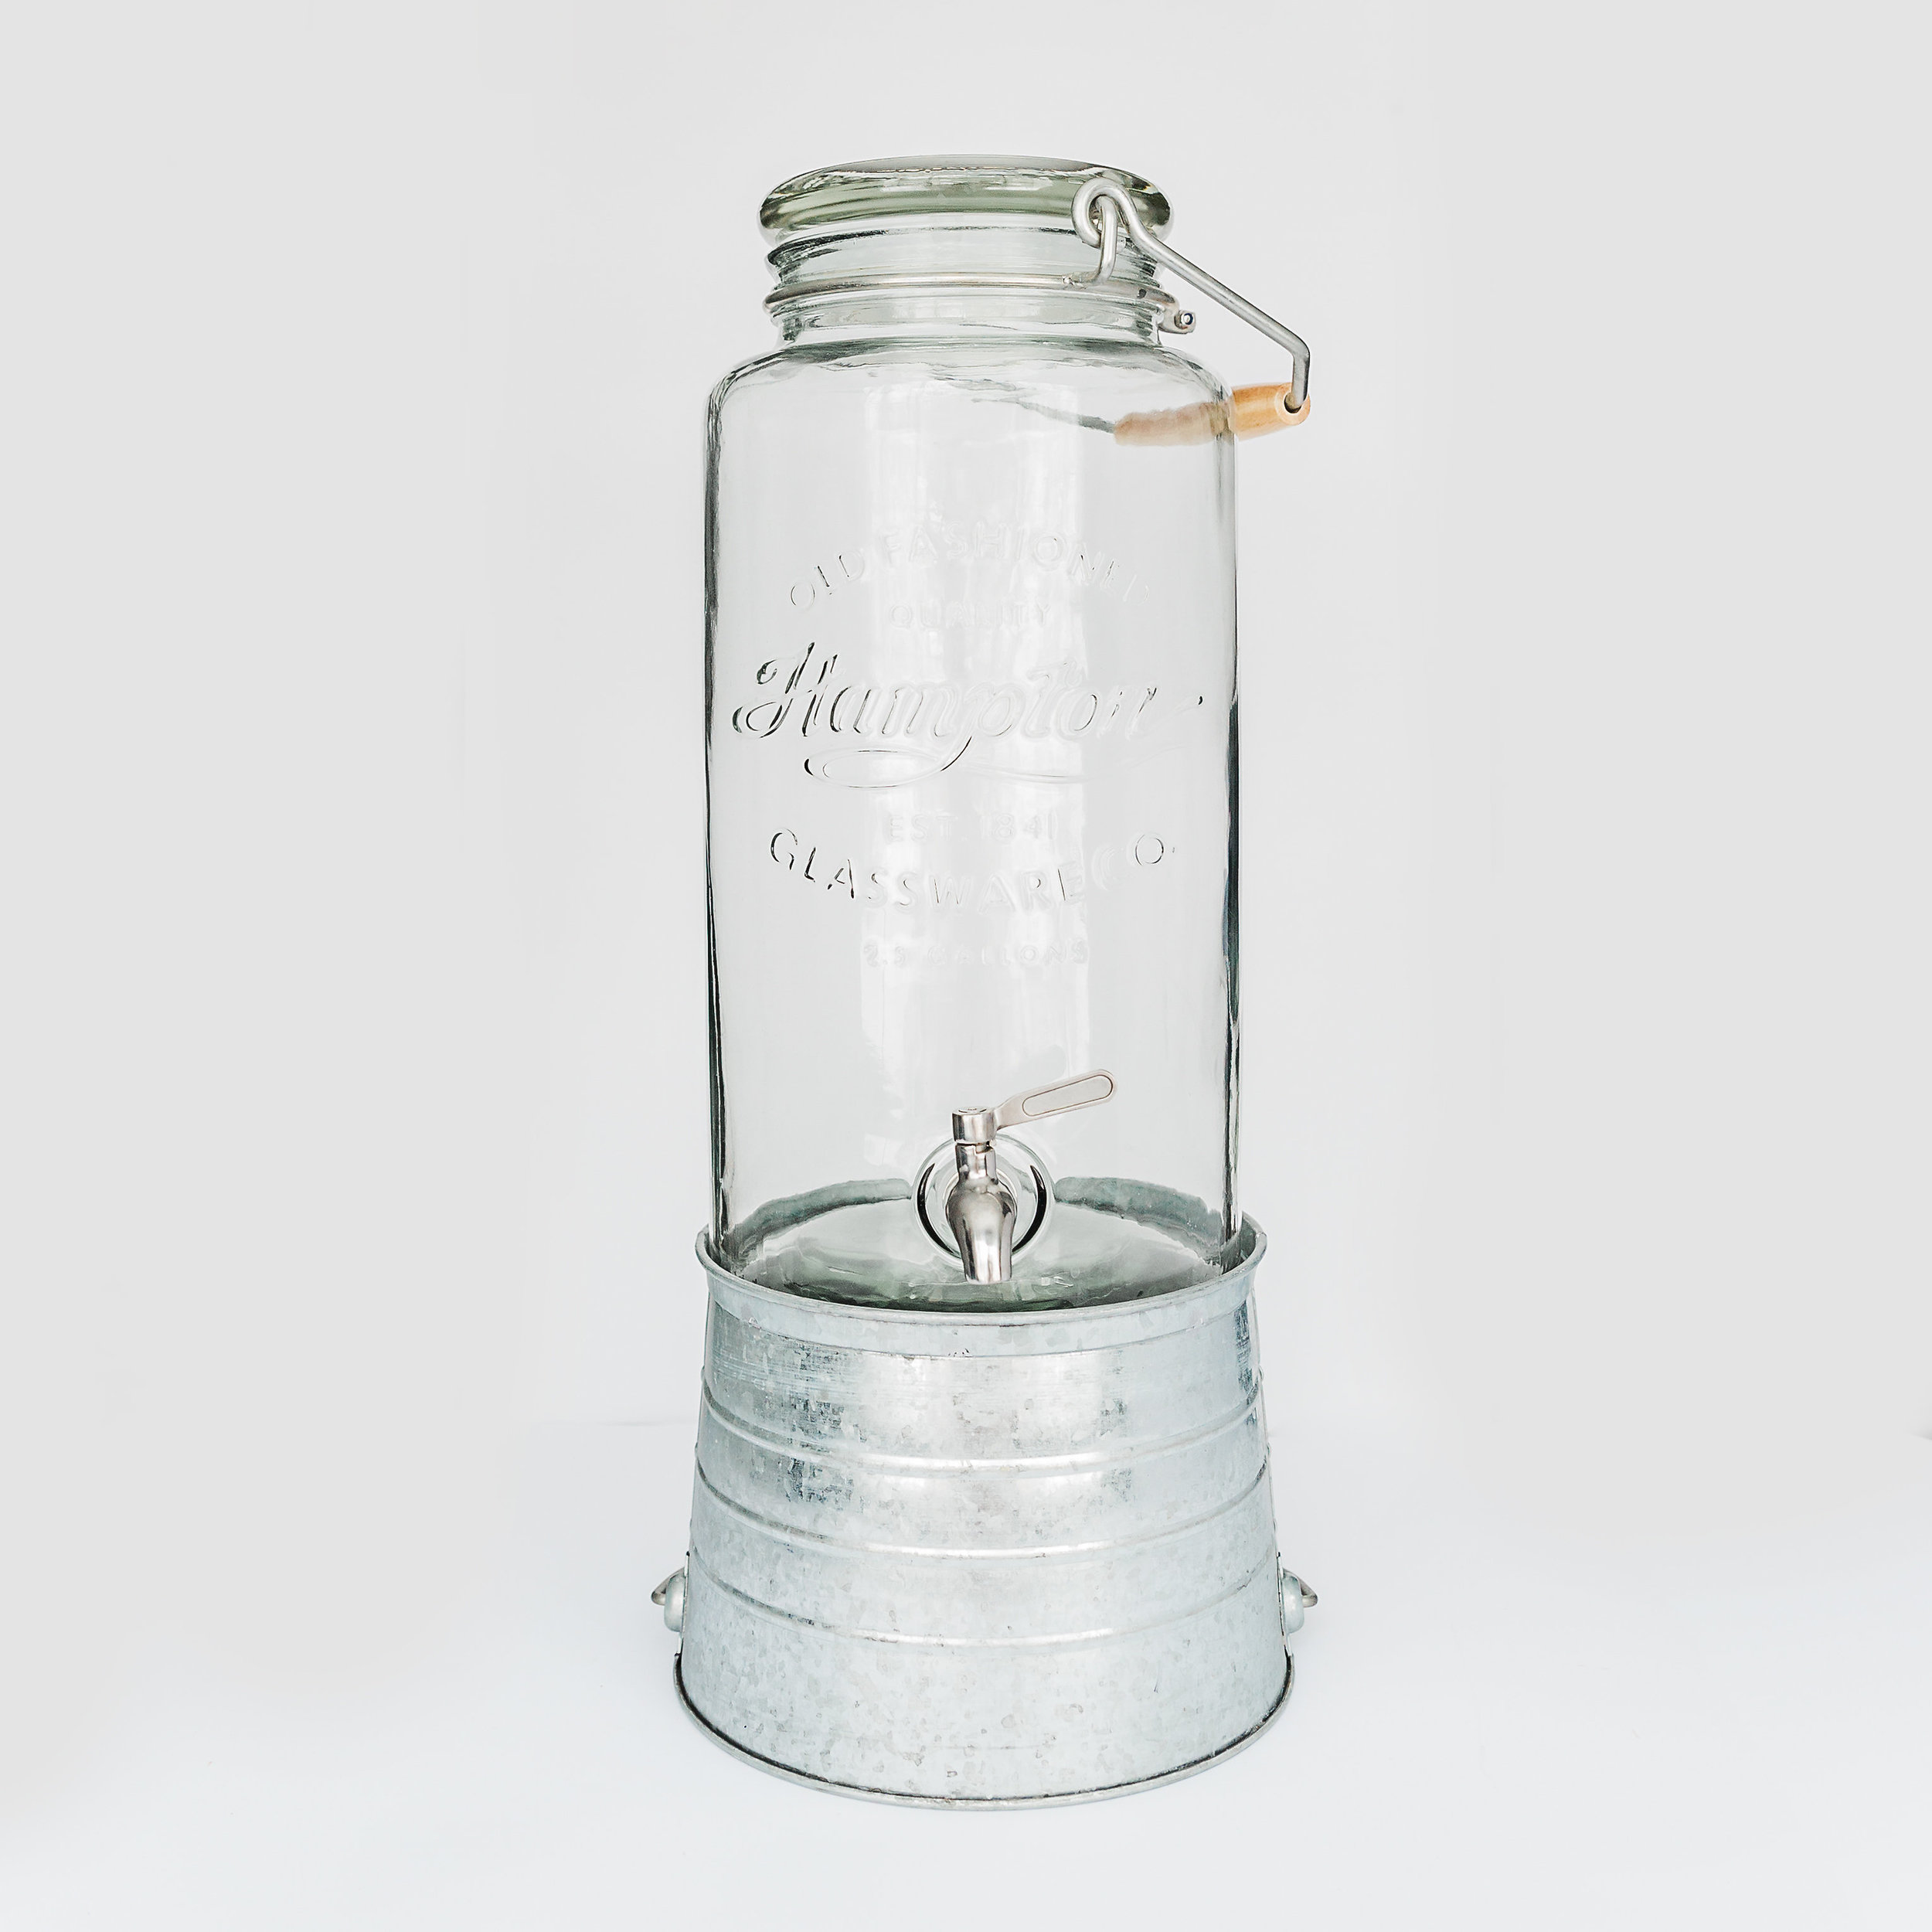 2.5 Gallon Glass Beverage Dispenser  dimensions: 9.5 inches x23 inches. metal bucket is removable. >>>$8.00<<<